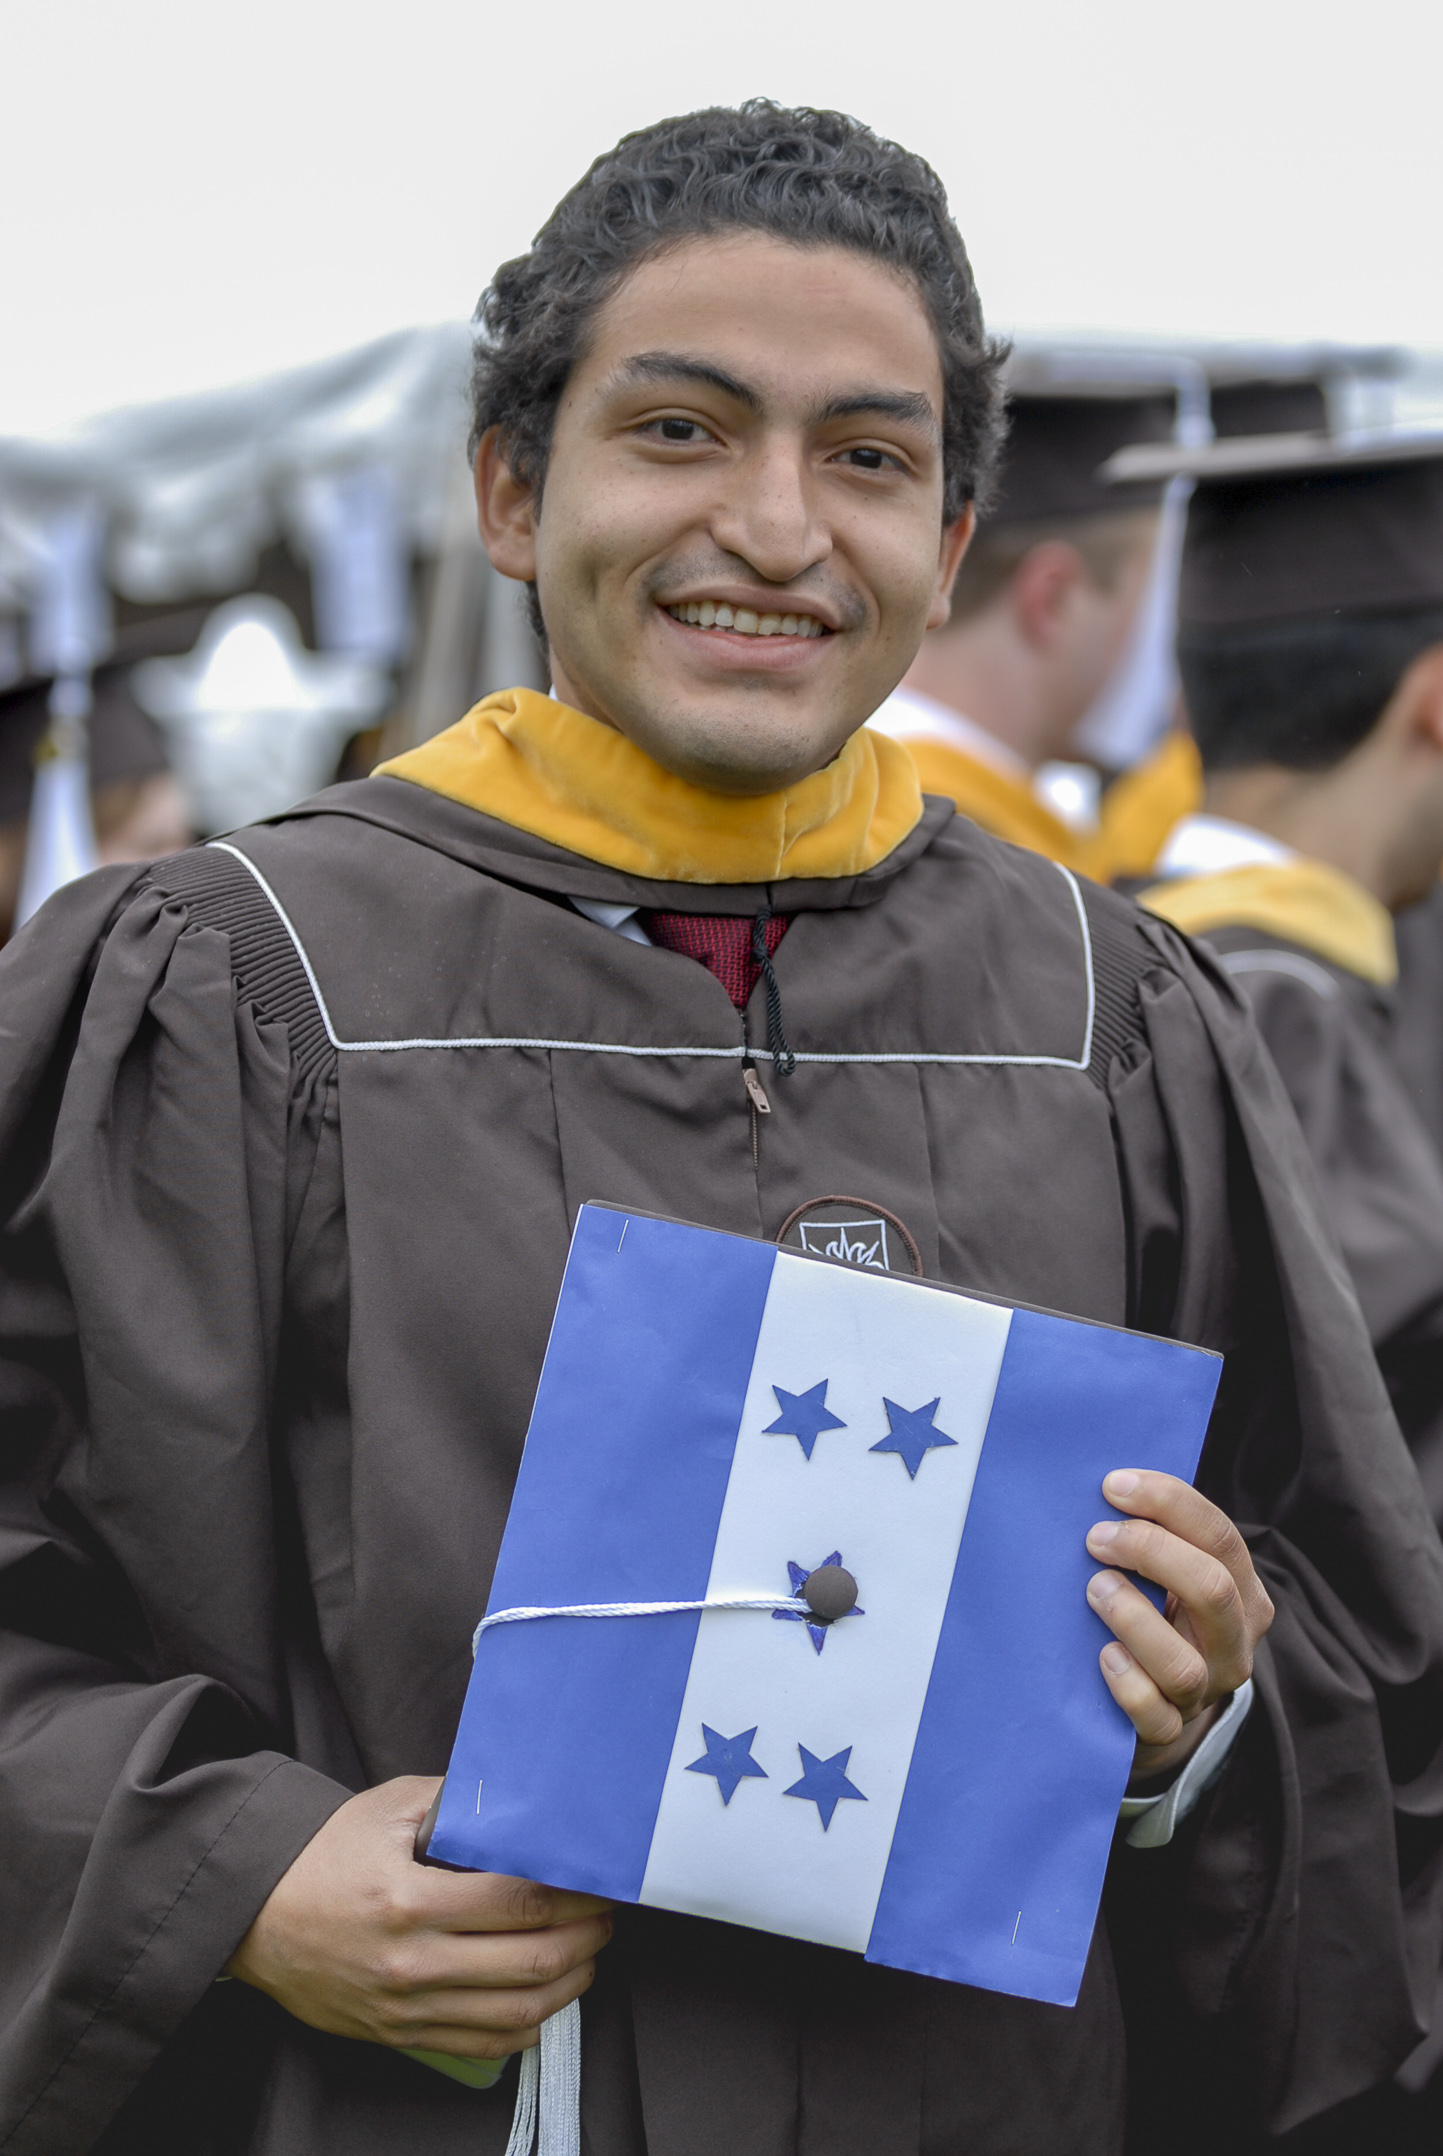 Alejandro Castro, '17, holds his graduation cap Monday, May 22, 2017, outside Goodman Stadium. Castro, an industrial and systems engineering graduate, decorated his cap with the Honduras flag to show pride for his home country. (Roshan Giyanani/B&W Staff)